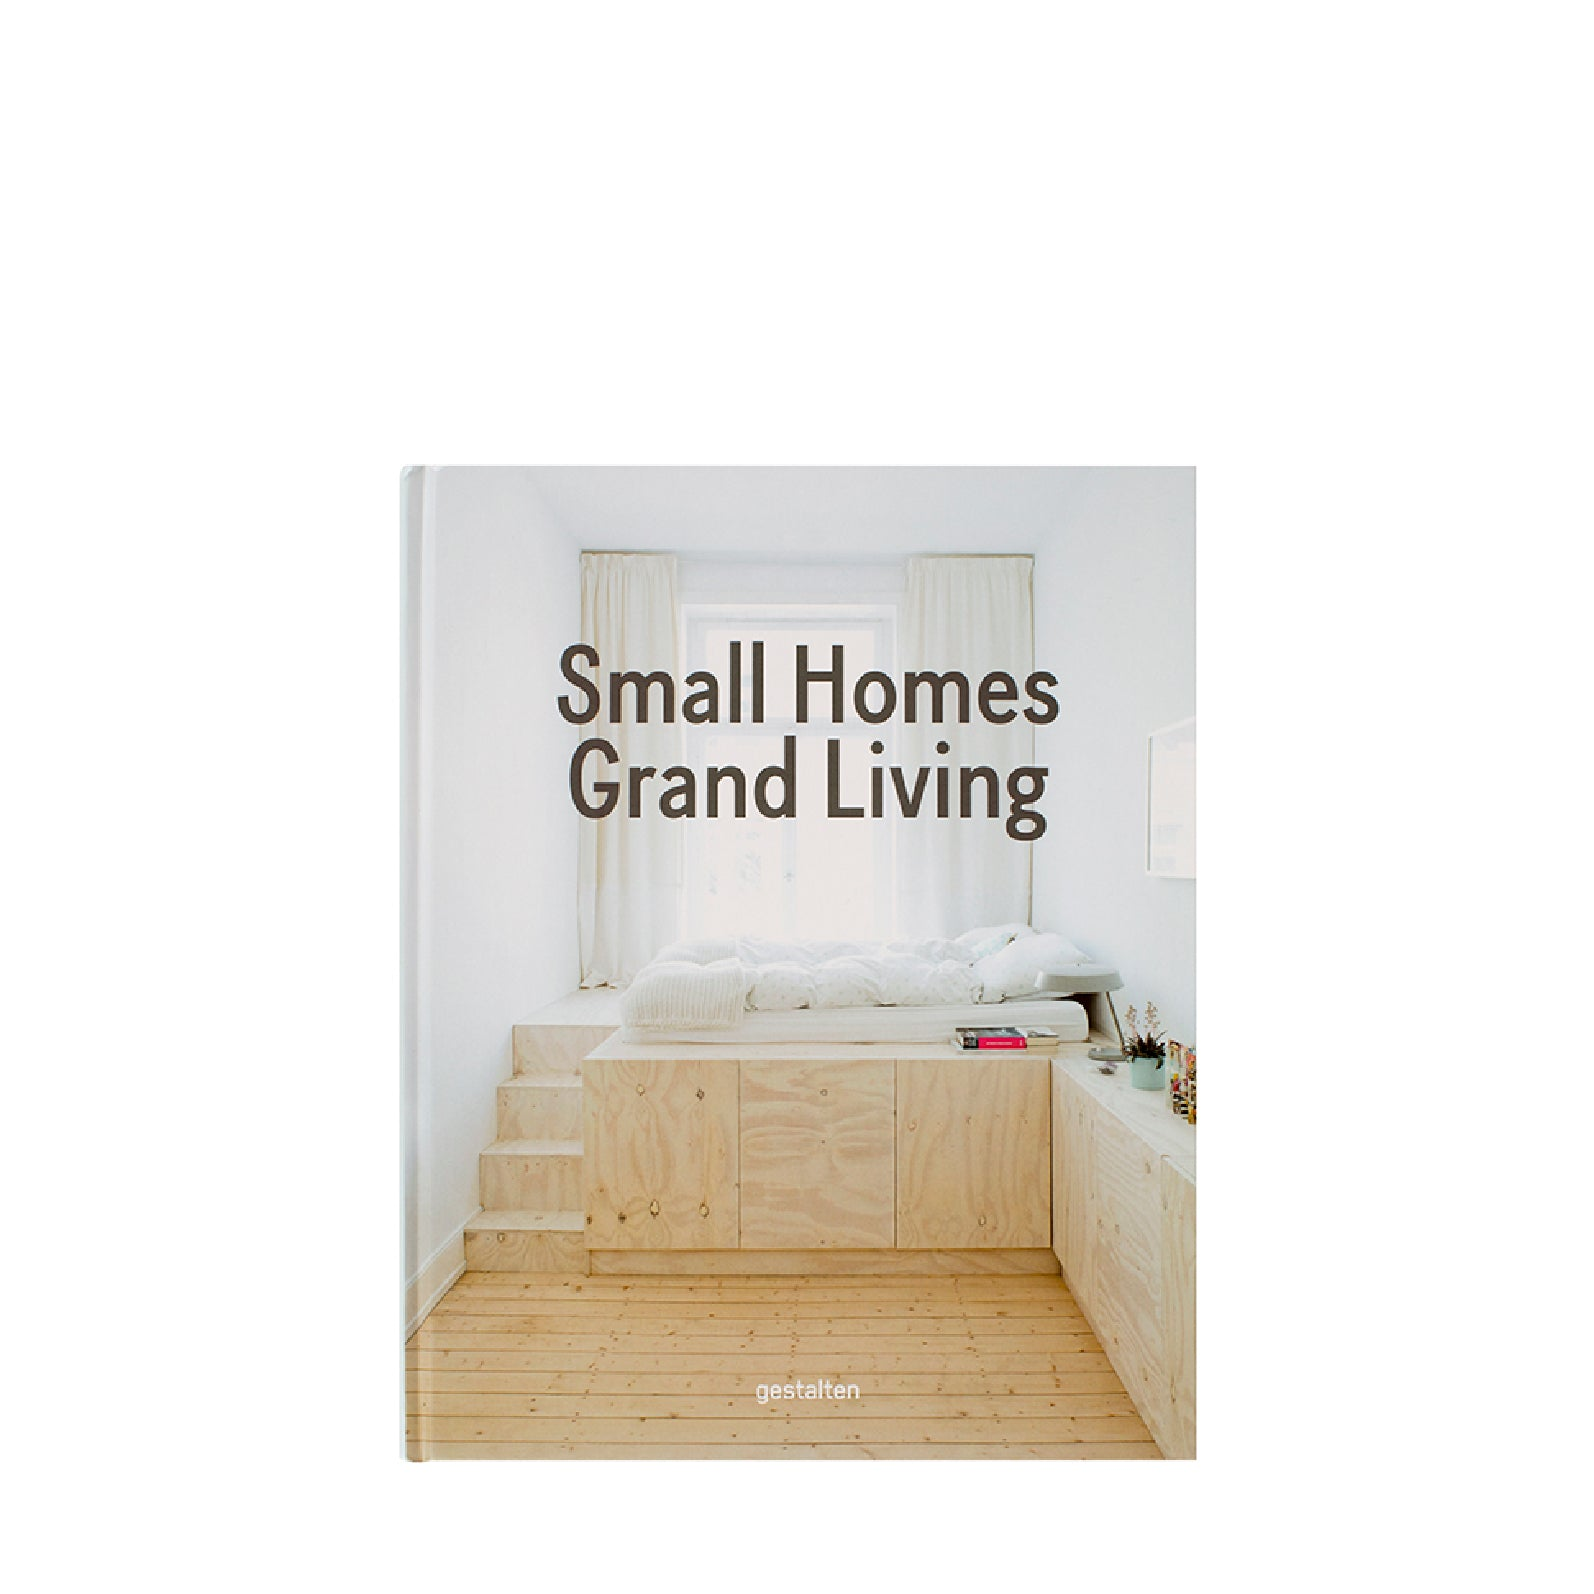 Gestalten - Small Homes Grand Living